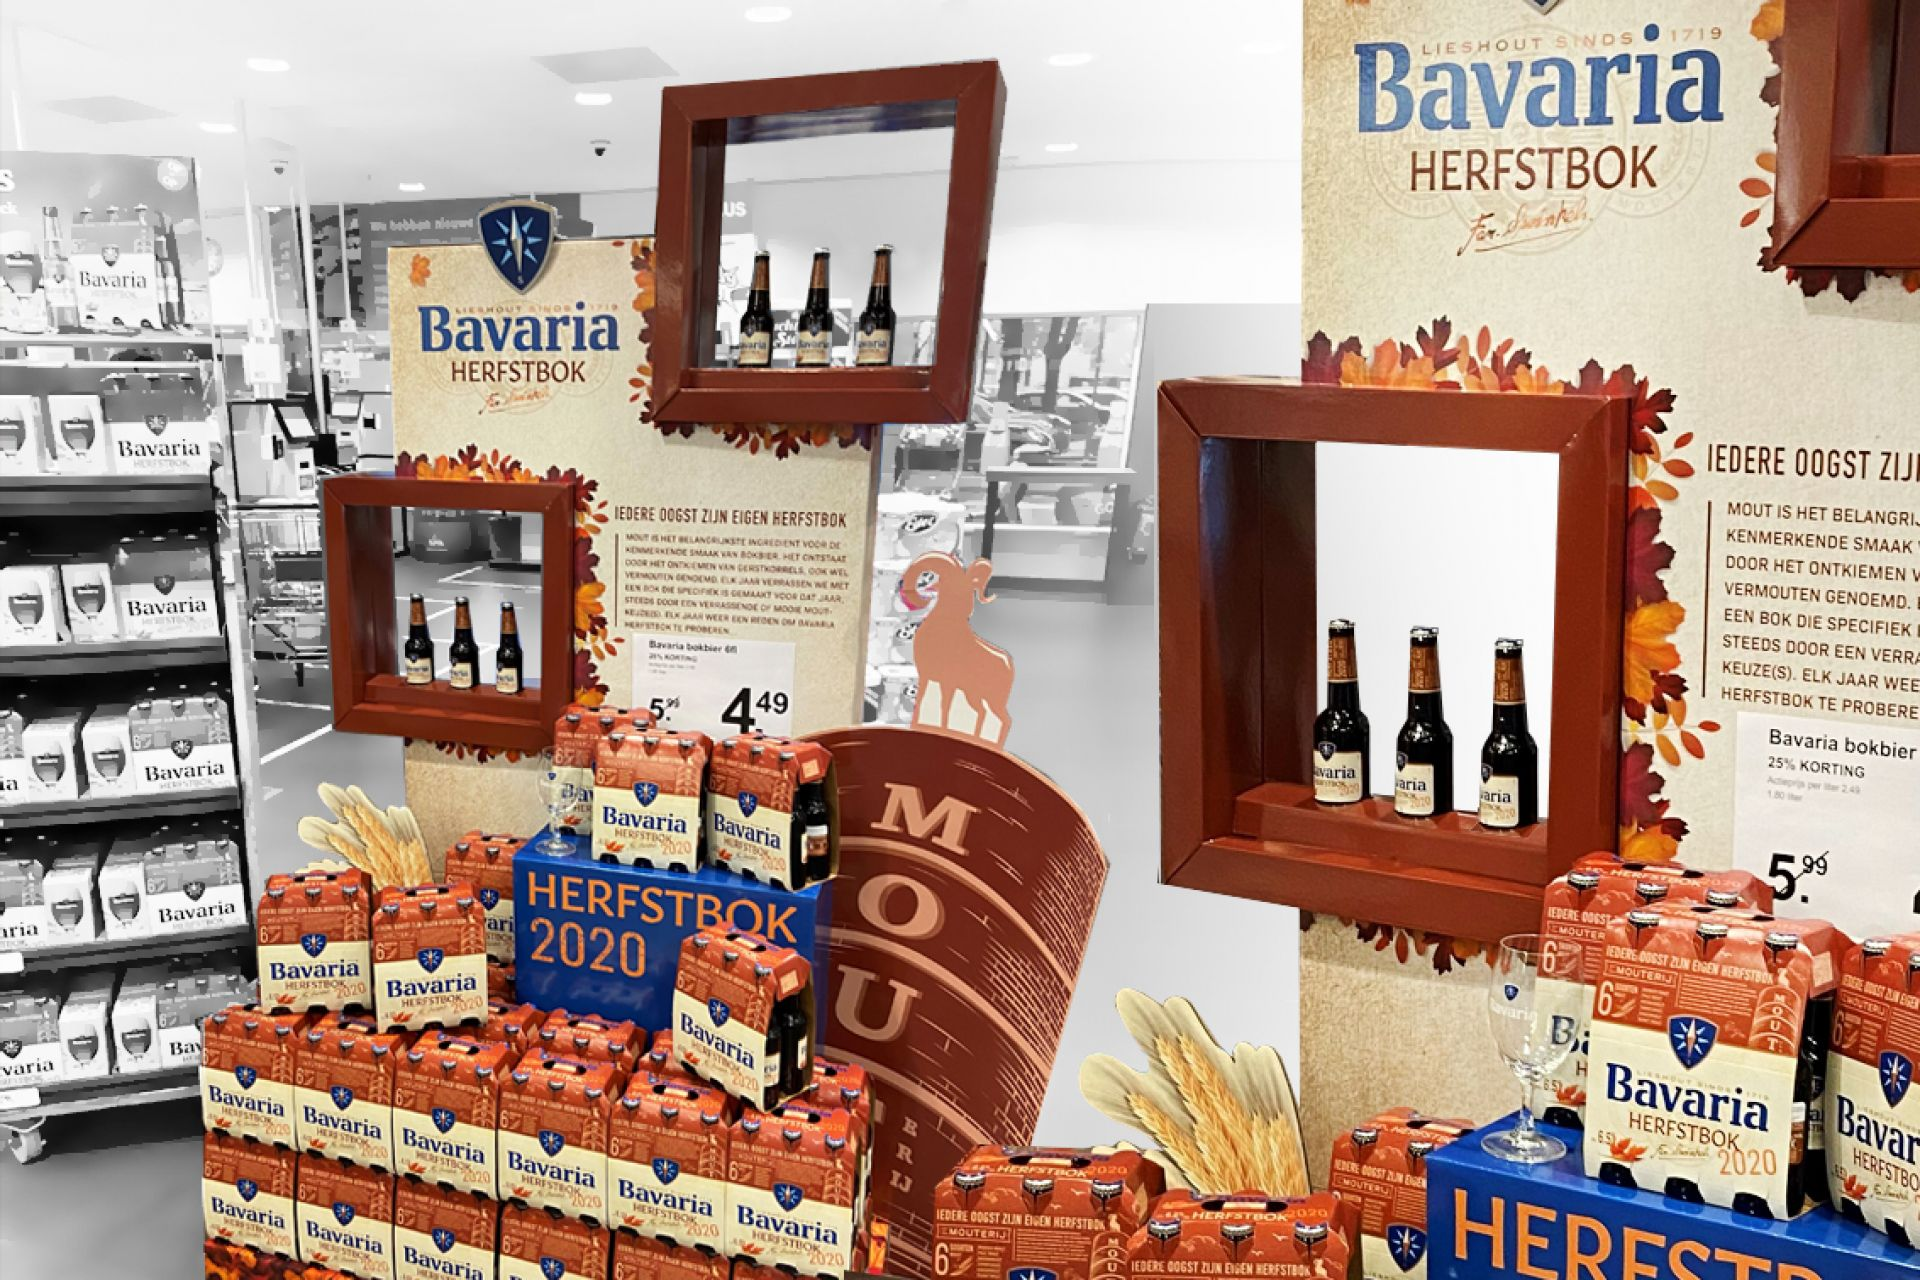 BAVARIA - The Beer Experience